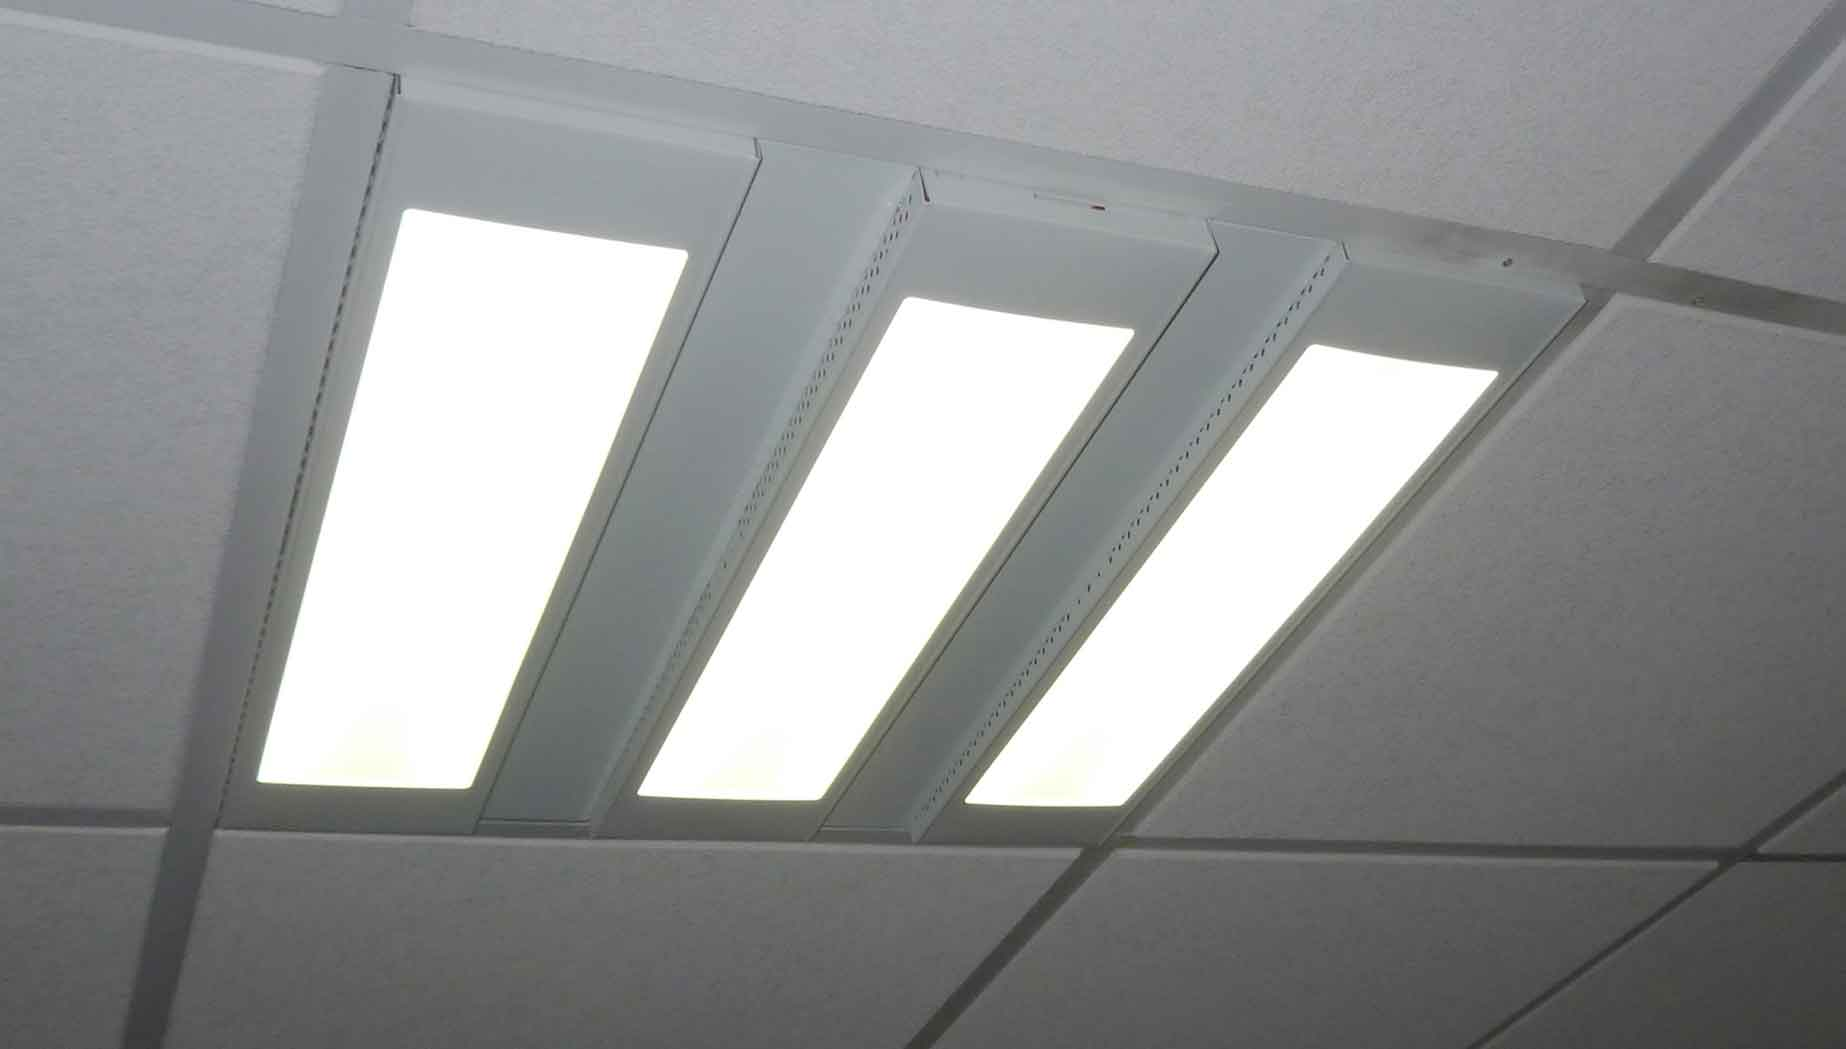 How-LED-Light-Panels-are-replacing-fluorescent-ceiling-light-options-and-retail-stores